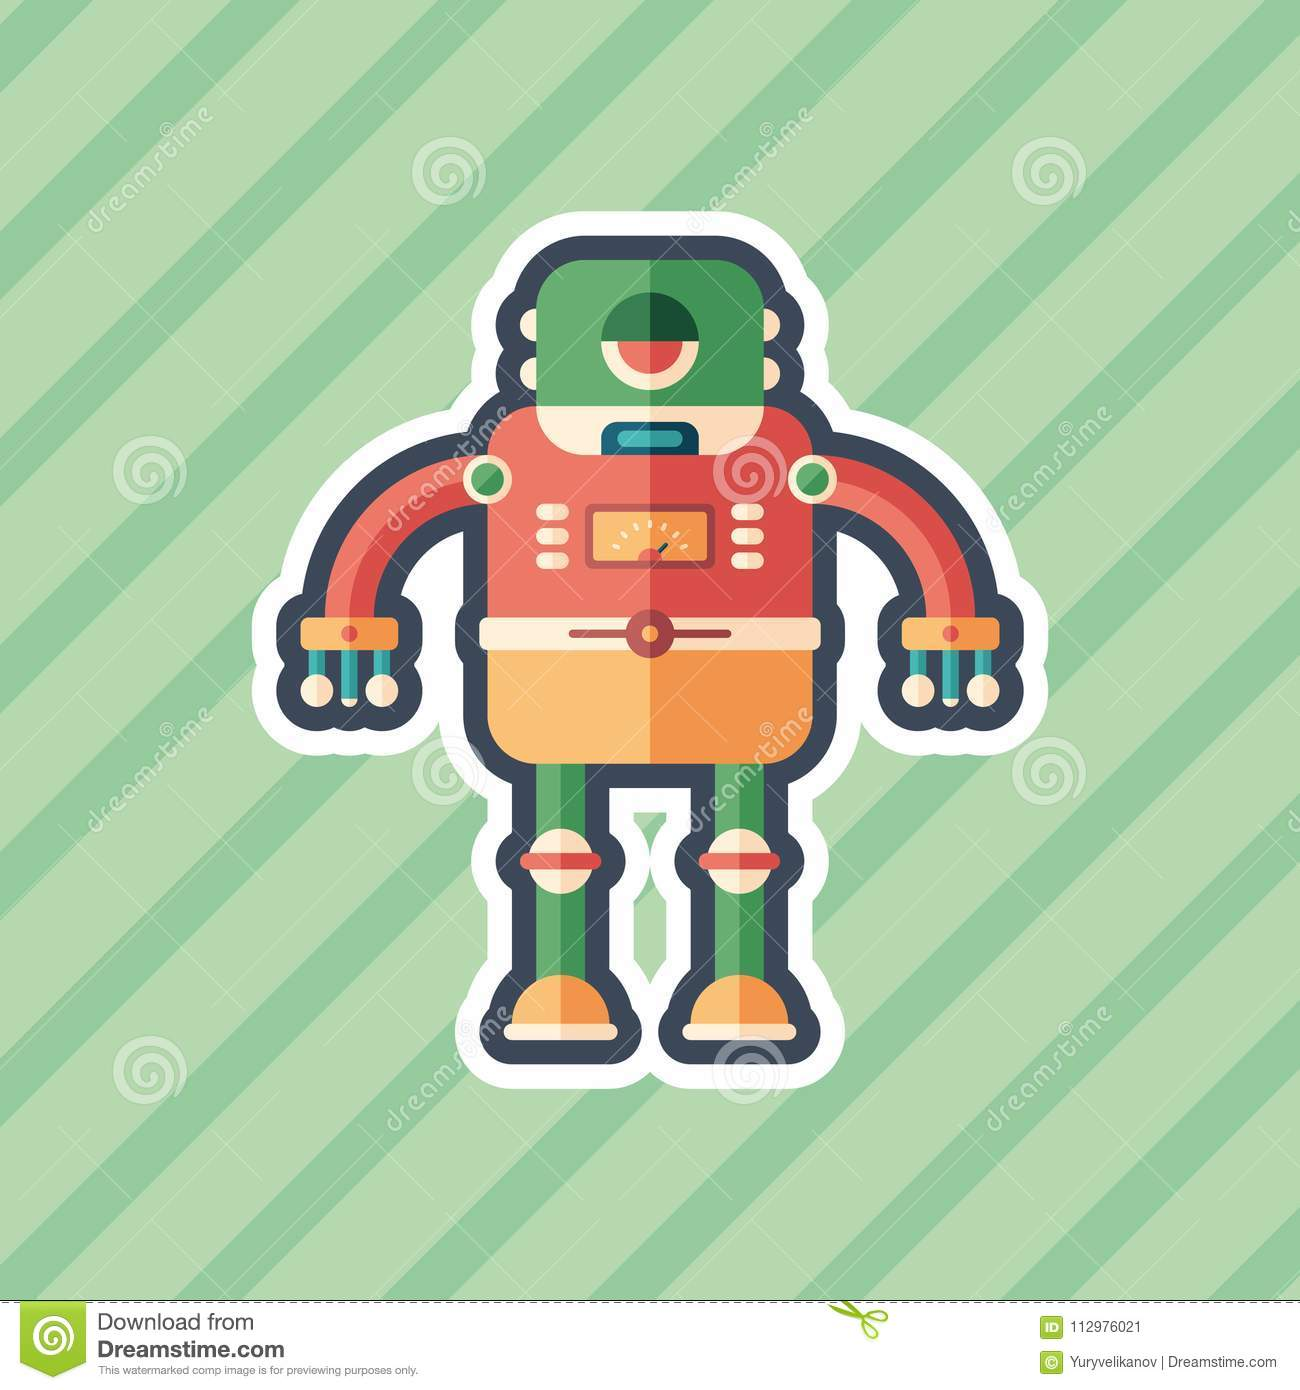 Robot frog sticker flat icon with color background.